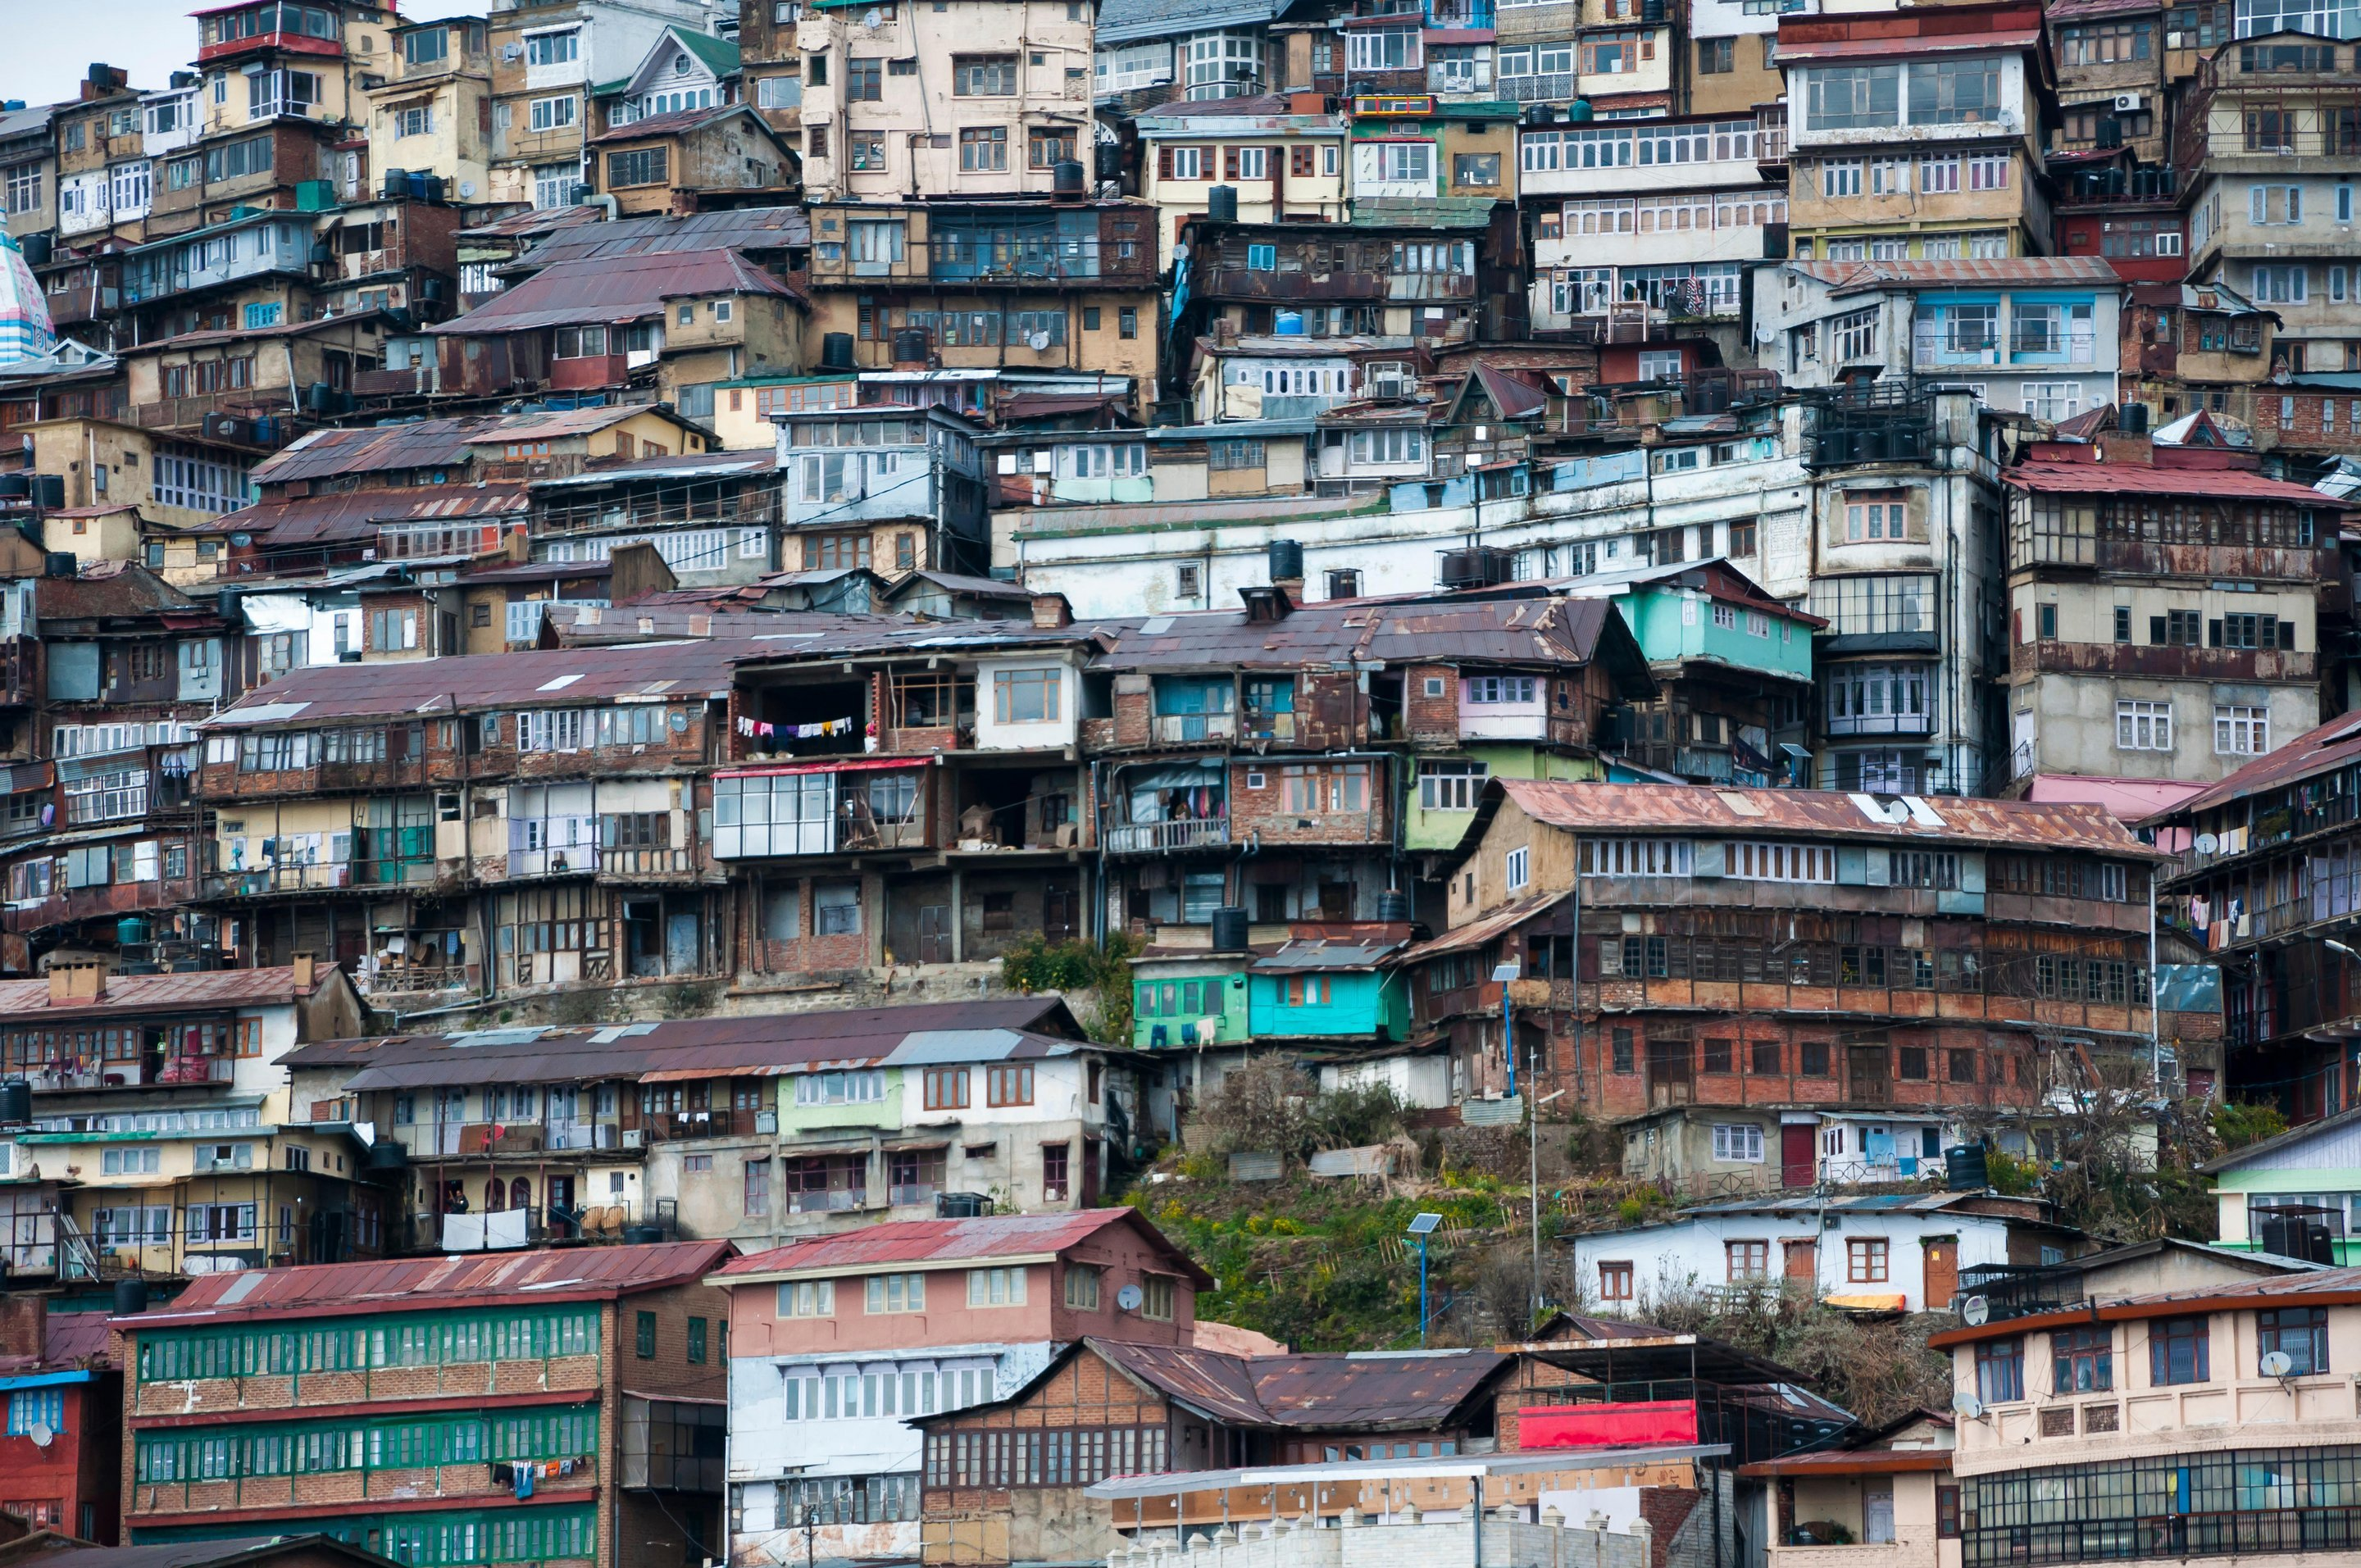 Crowded housing on the hillside in Shimla, Himachal Pradesh